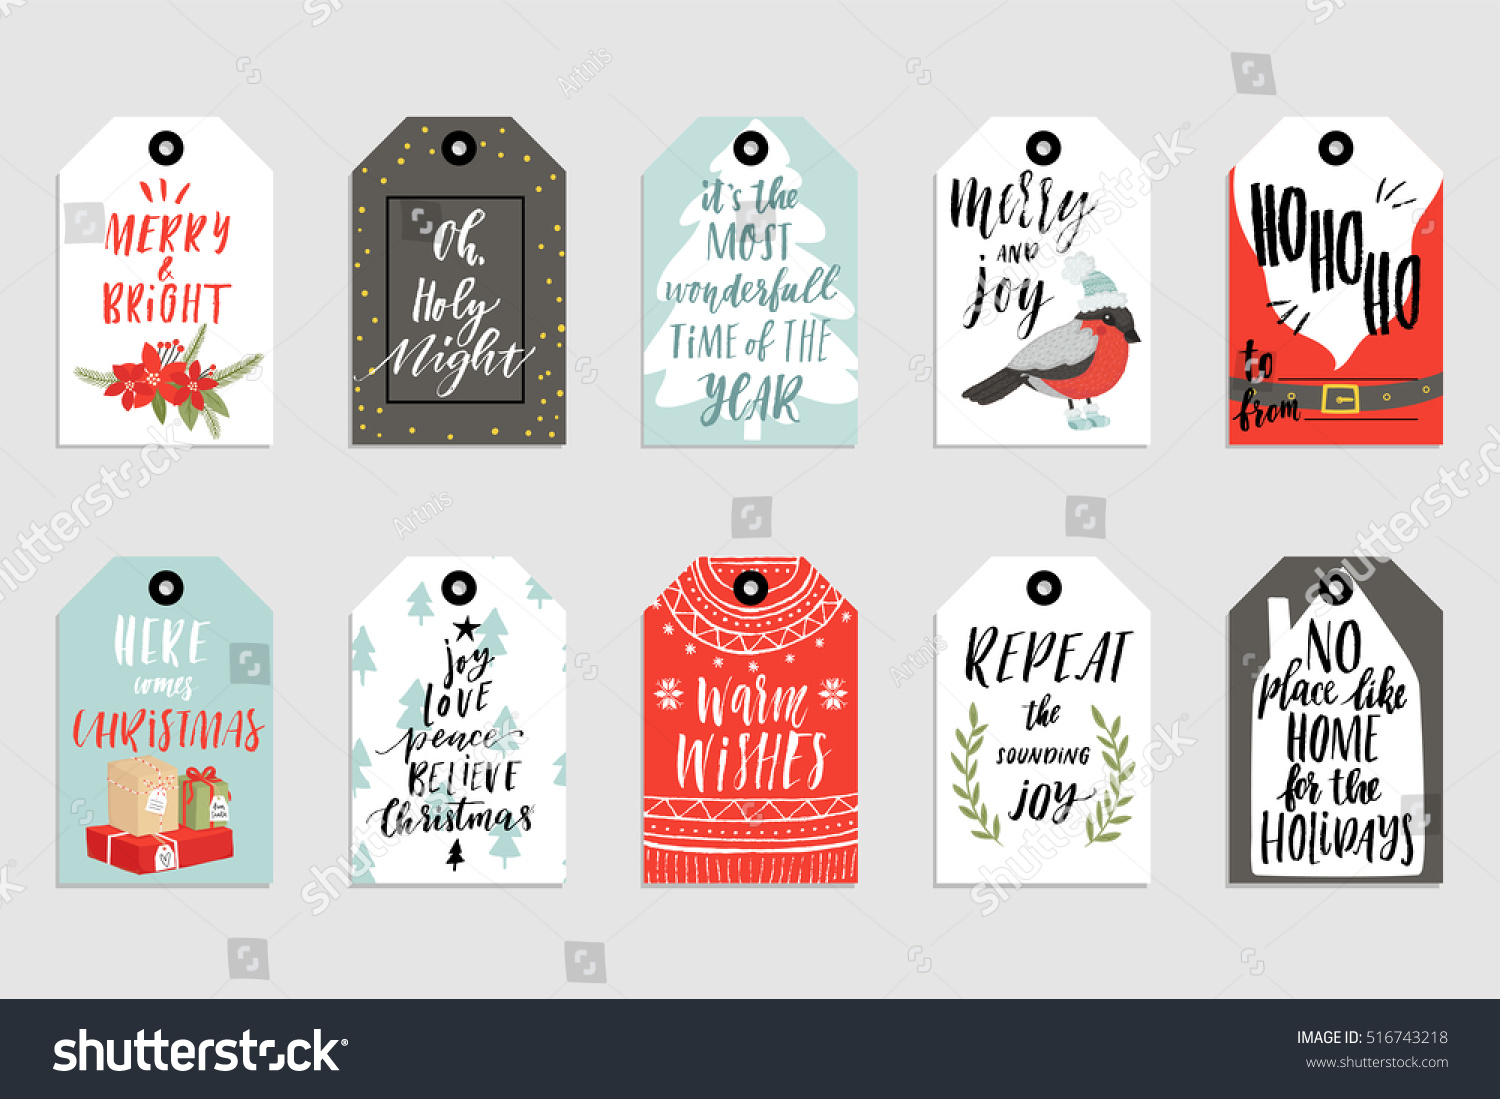 Collection of 10 cute Merry Christmas and Happy New Year ready-to-use gift tags Set of ten printable hand drawn holiday cards templates Vector seasonal labels design